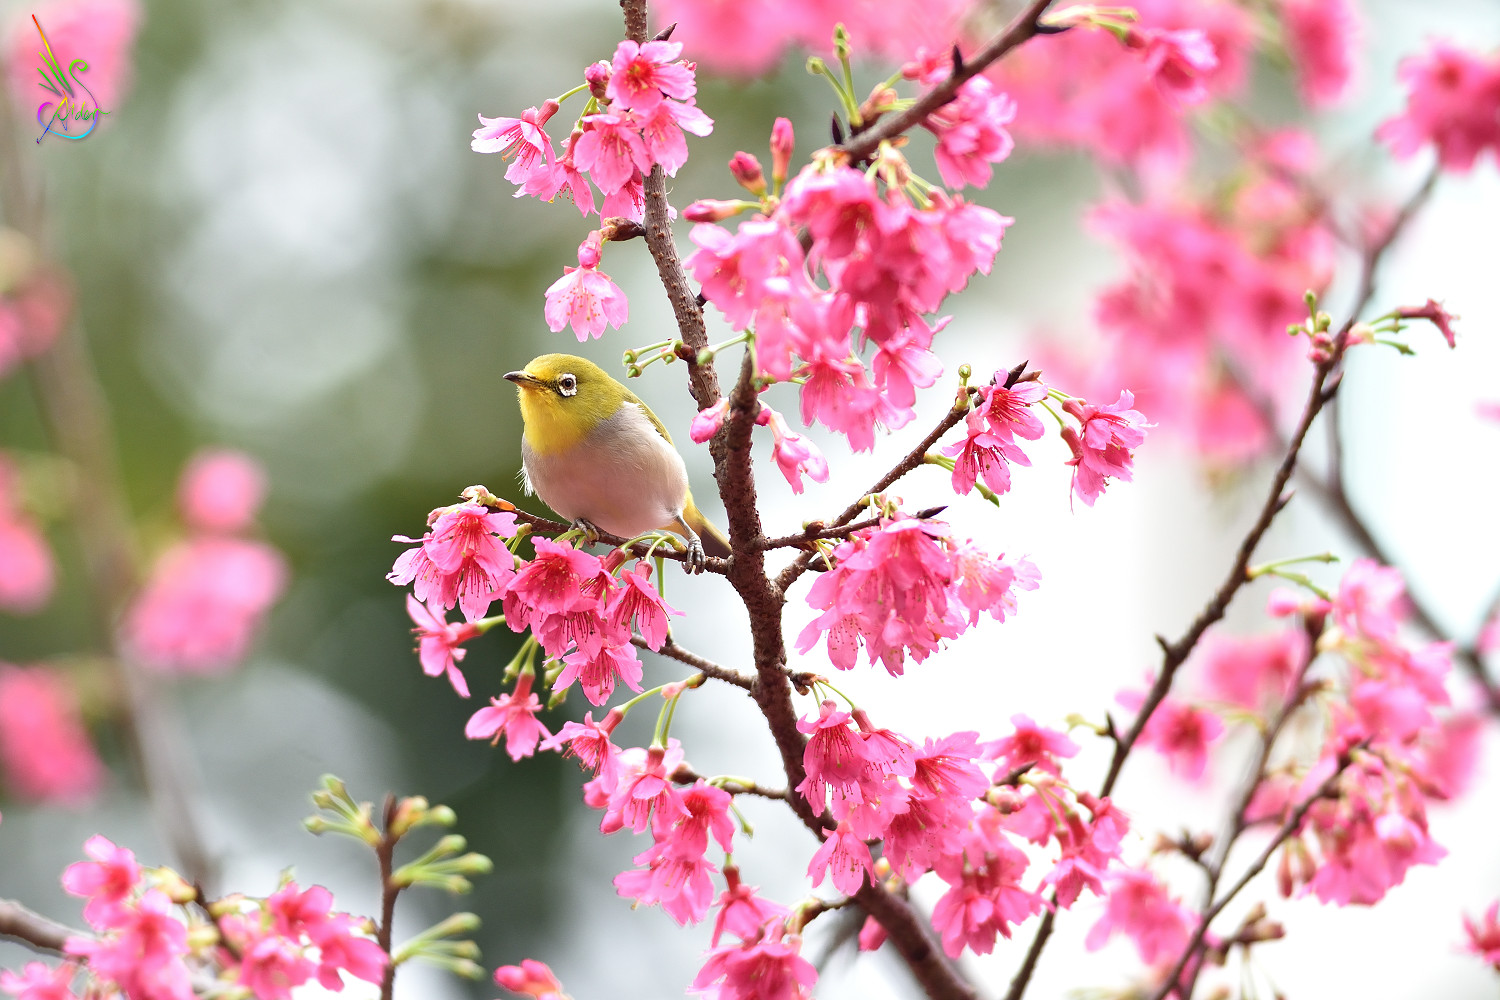 Sakura_White-eye_5163